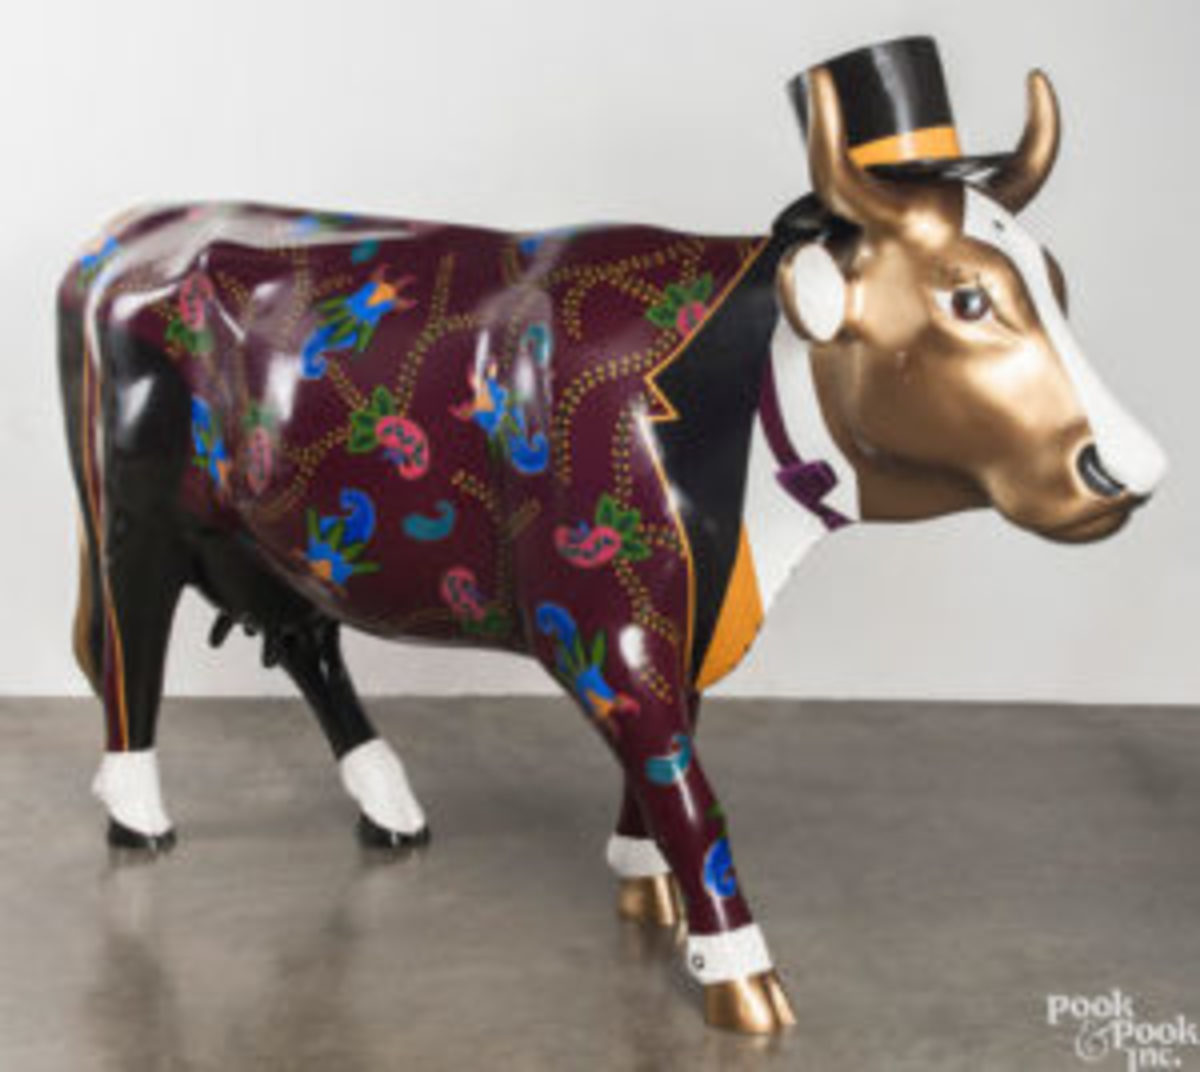 Life-size ceramic cow in a top hat